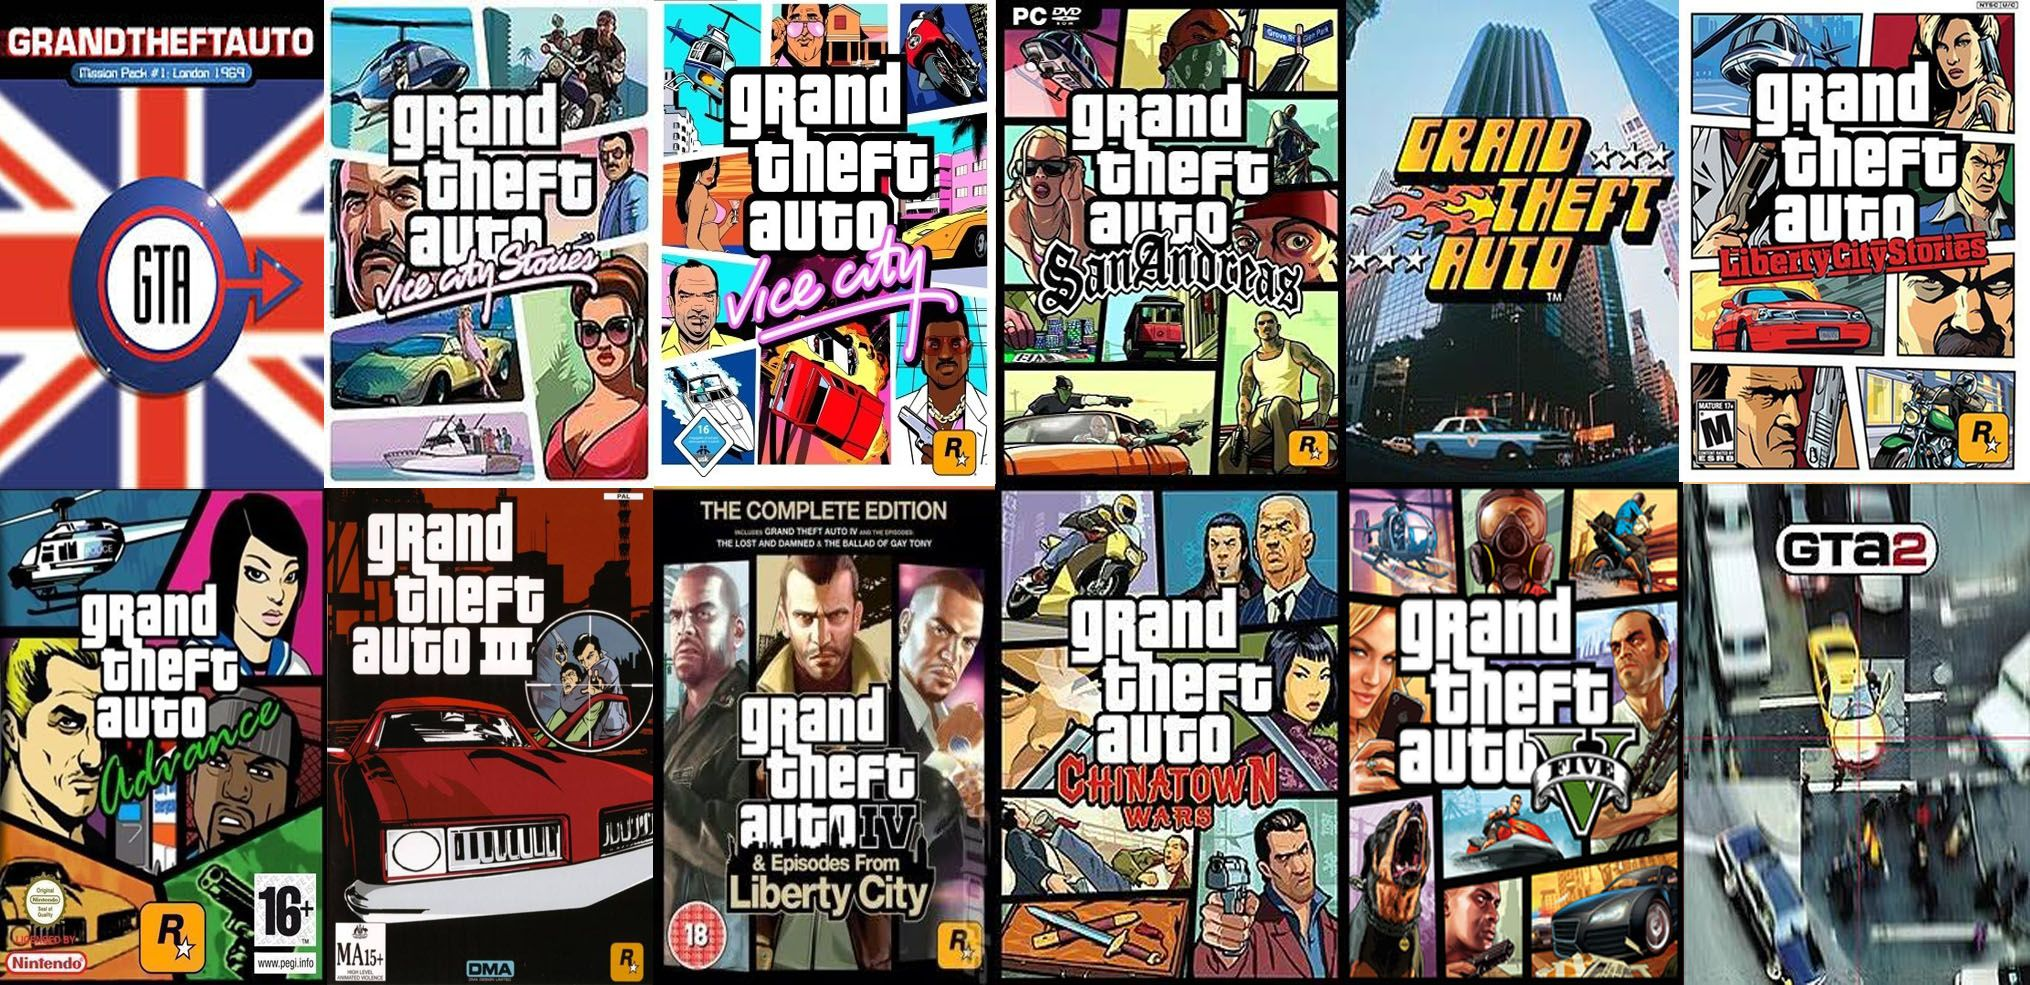 GTA 6 Release Date, Map, Leaks, and everything